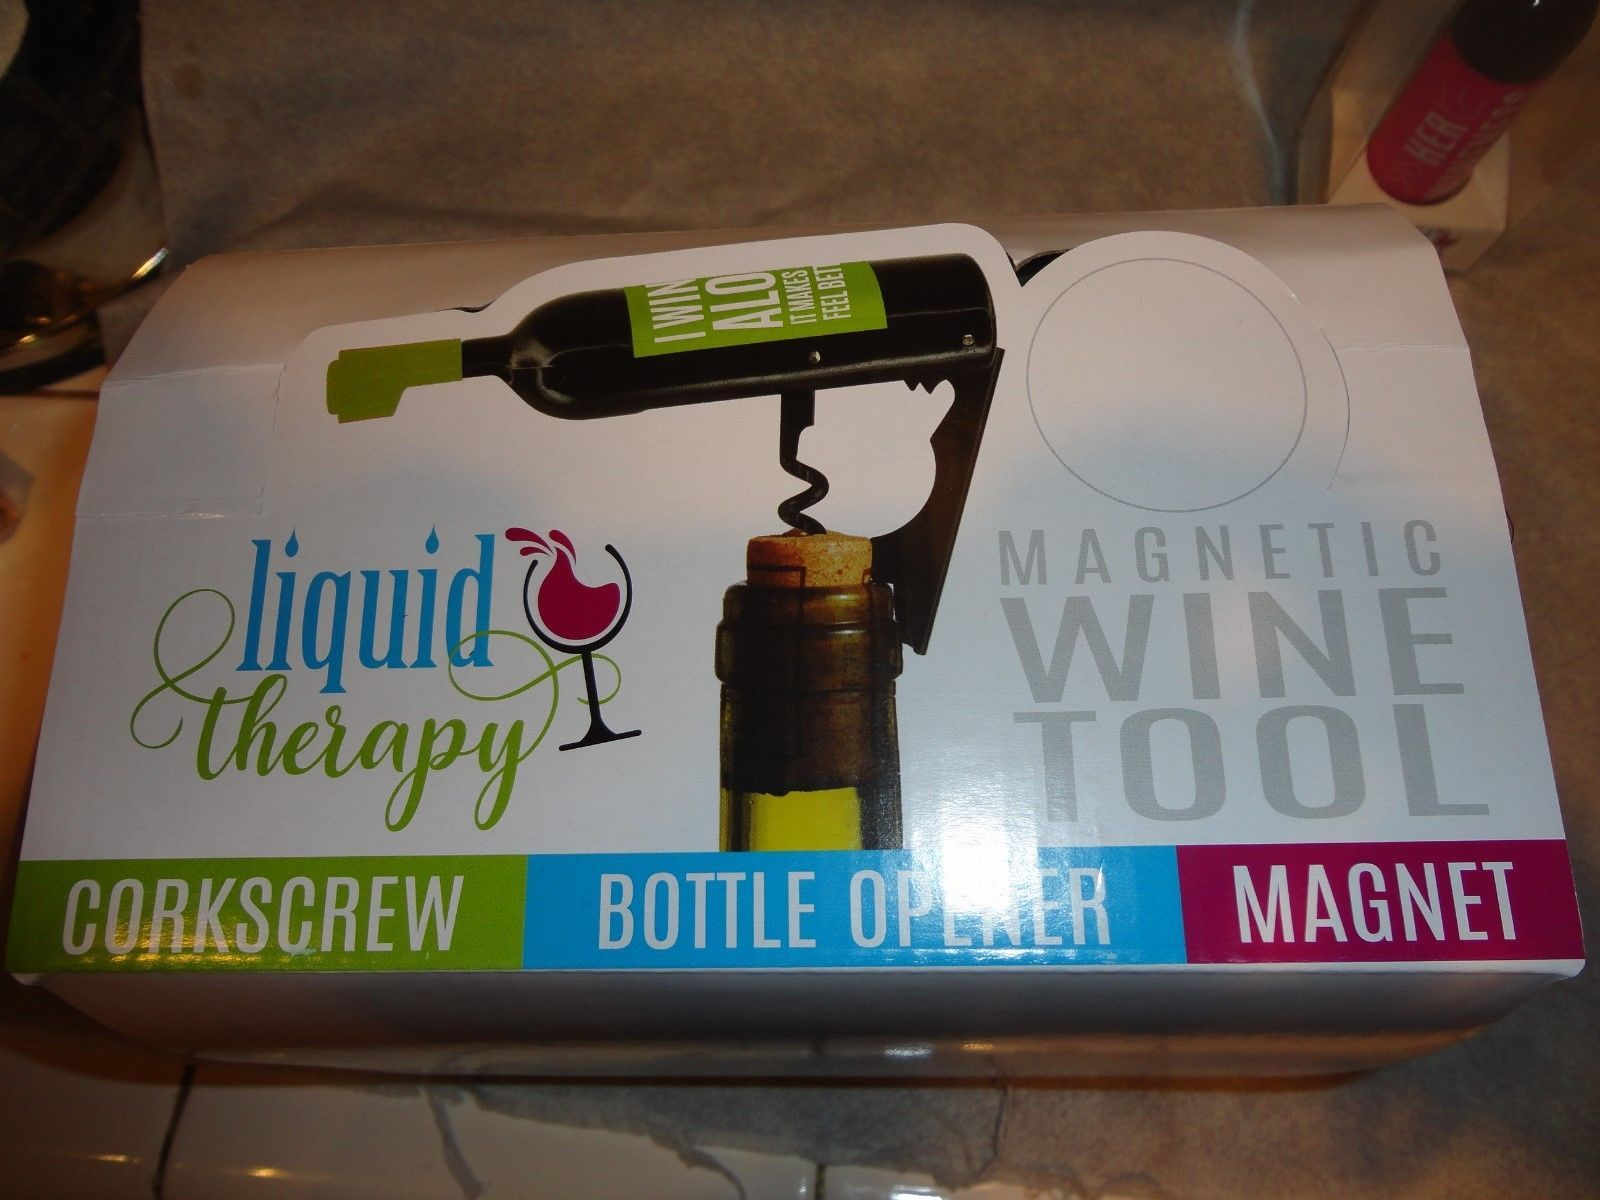 Liquid Therapy Magnetic WINE TOOL Corkscrew Botlle opener Magnet Great Gift ON